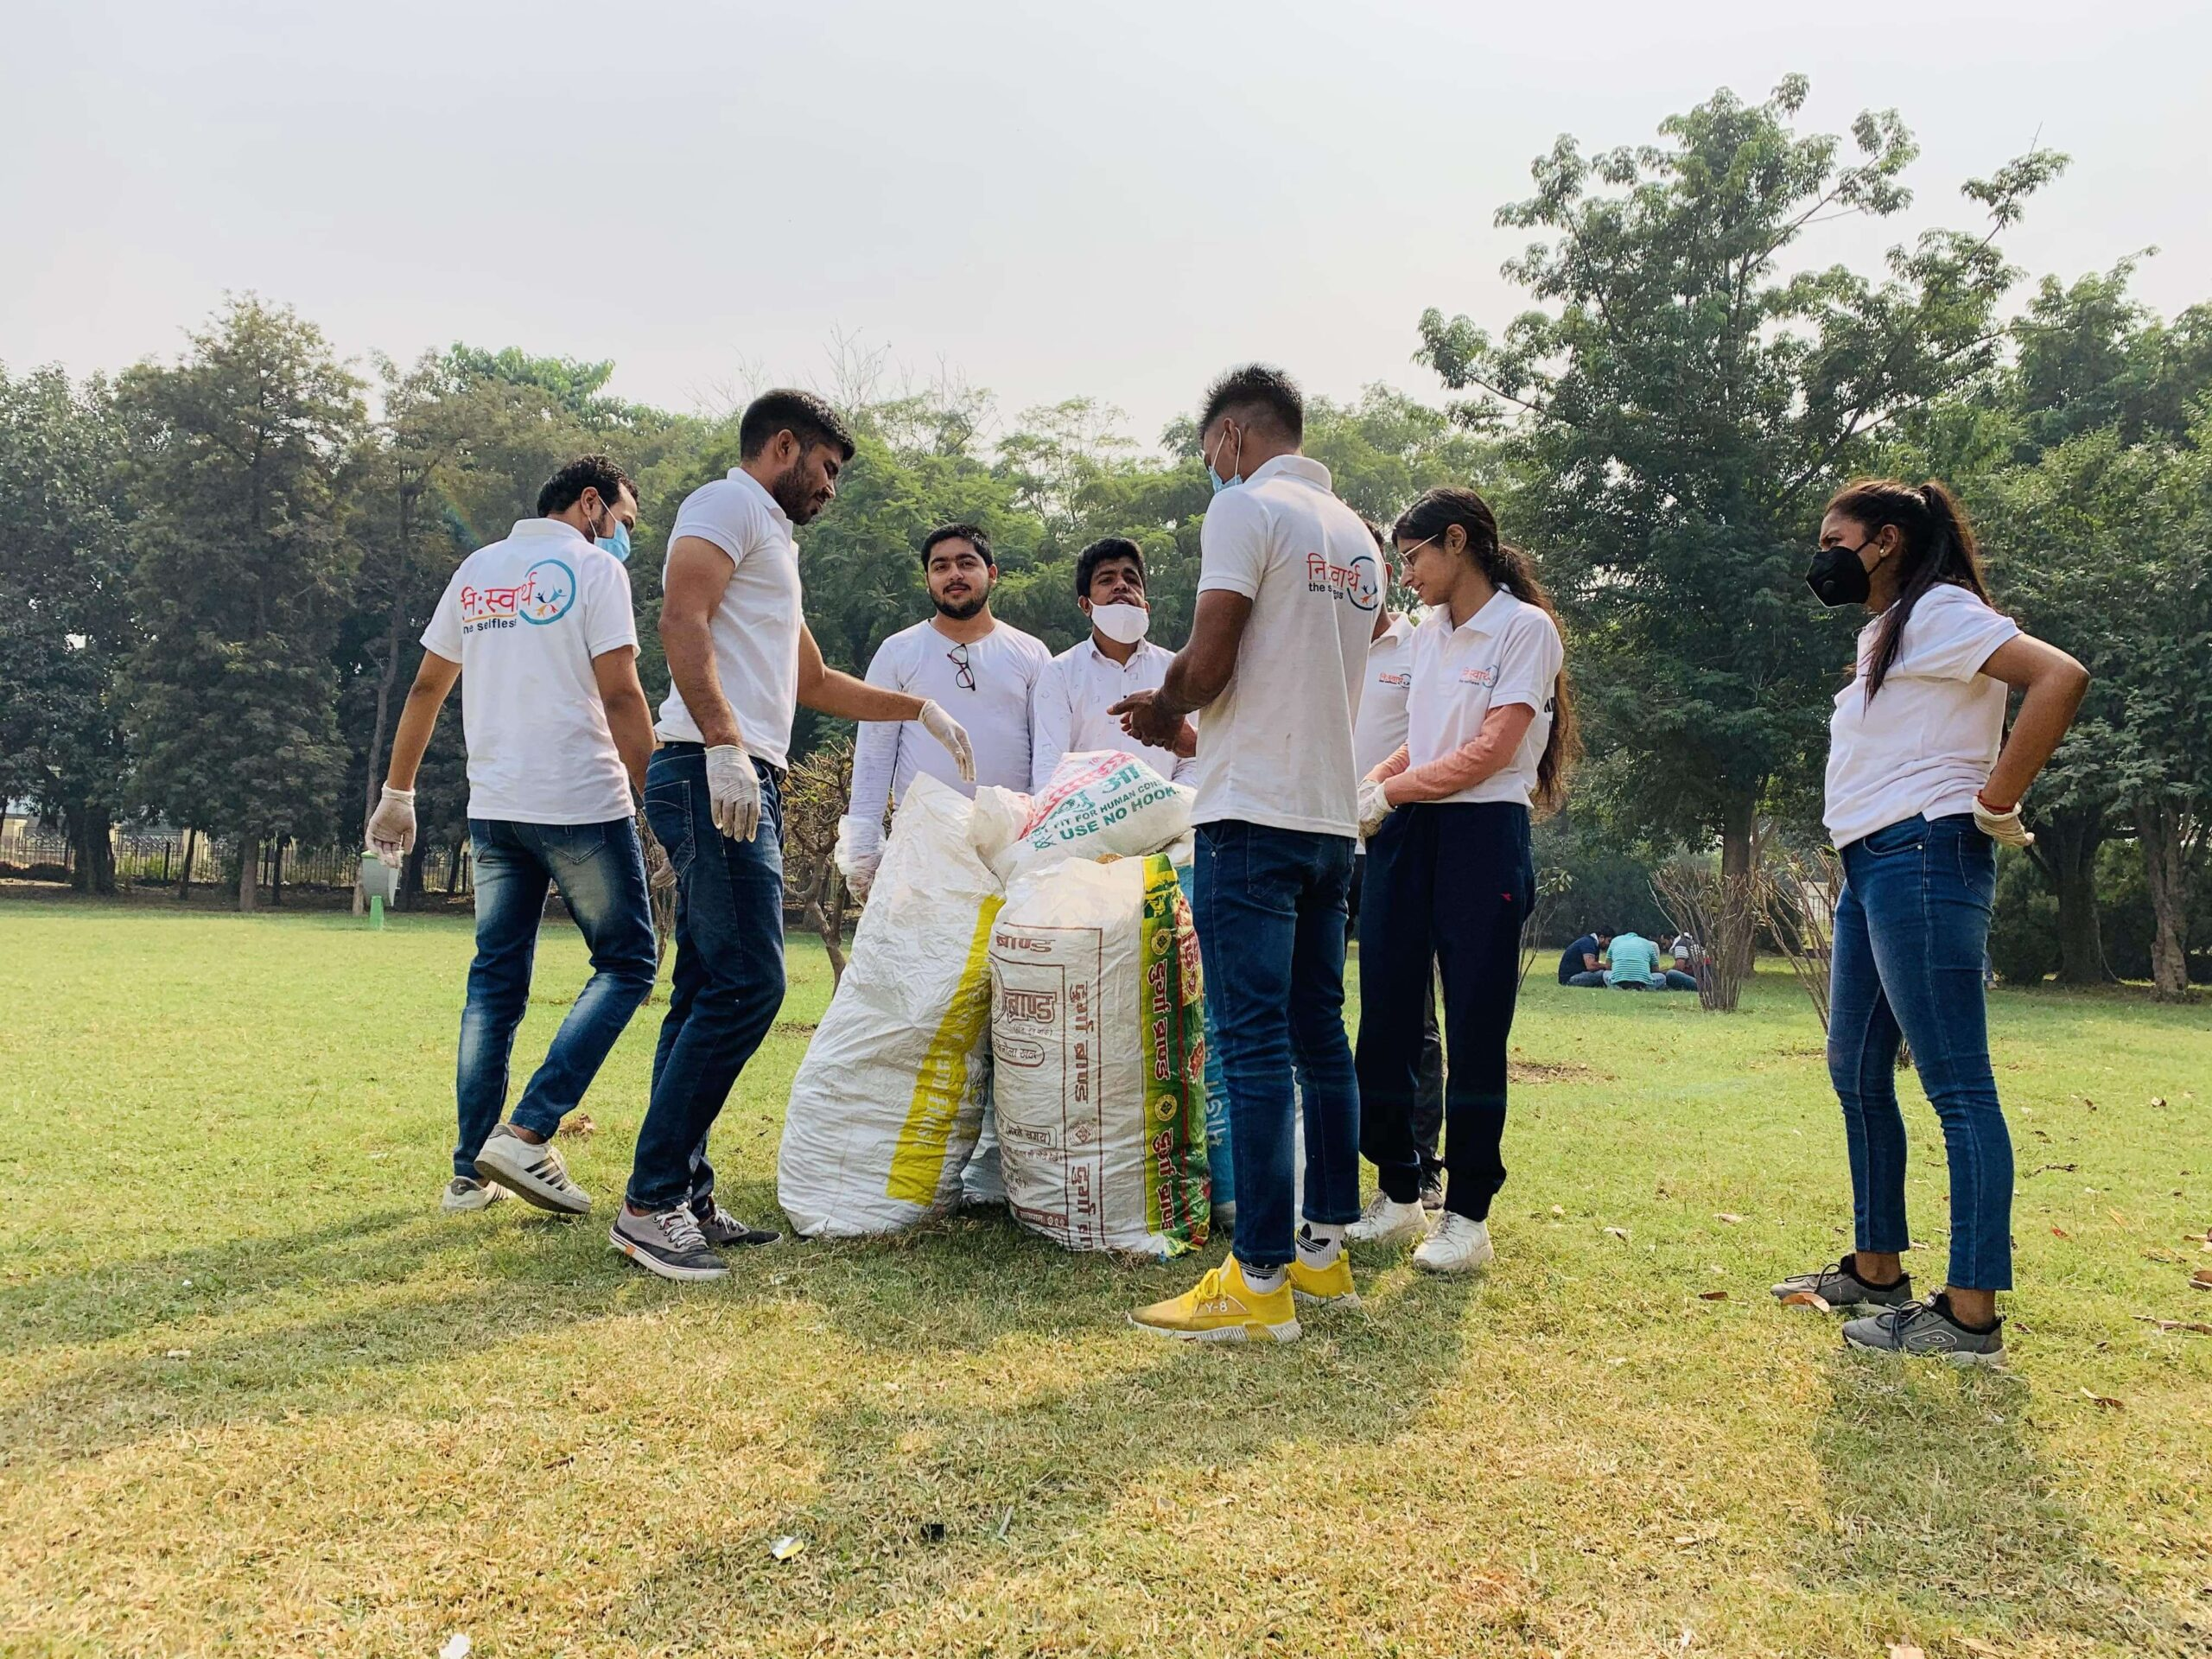 October 25 2020 - Central Park Cleanliness Drive - 3